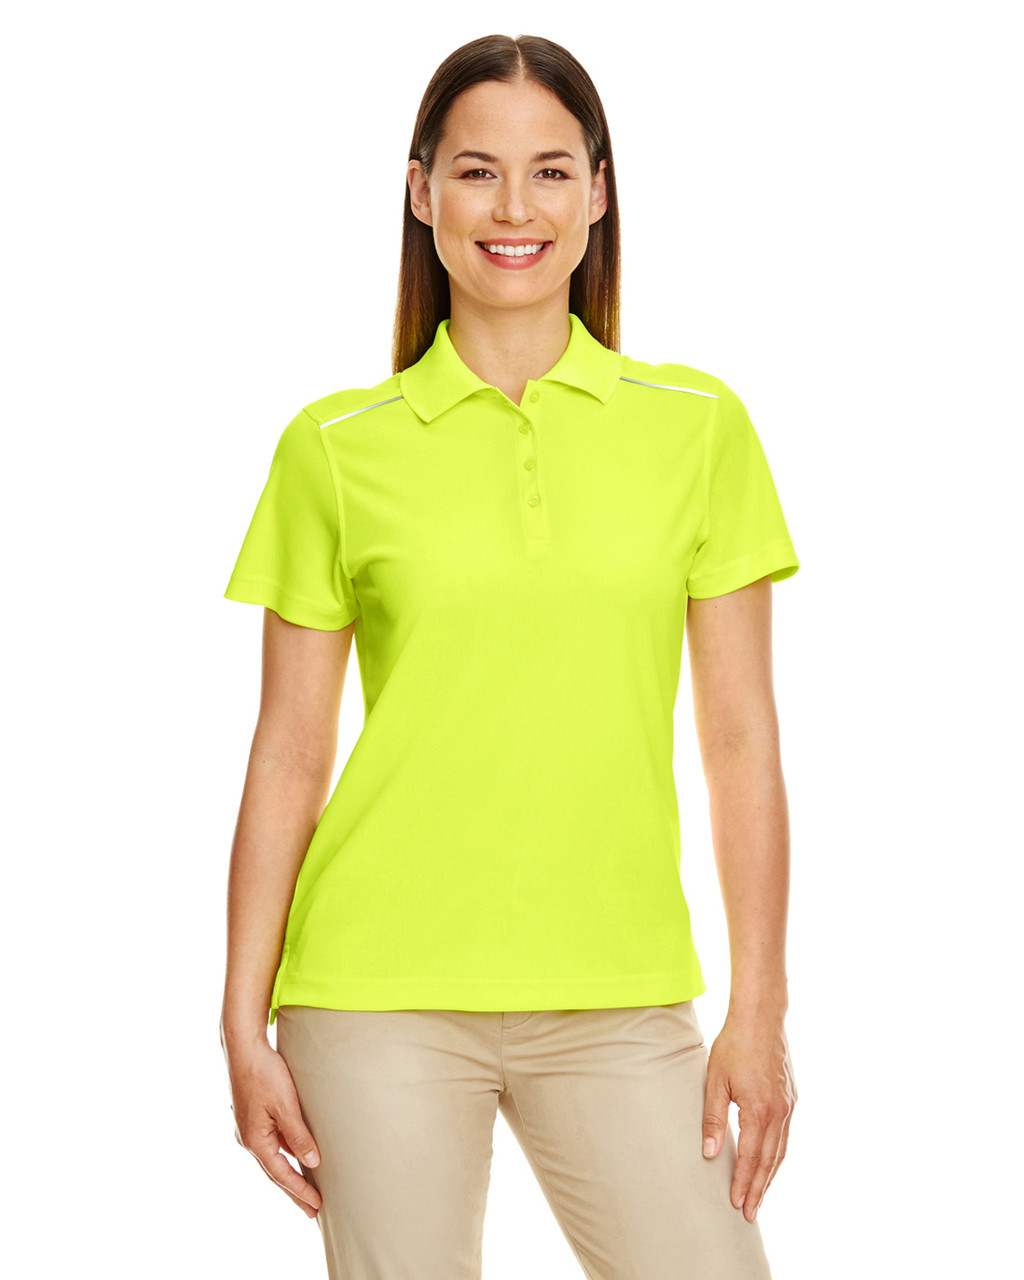 Safety Yellow - 78181R Ash City - Core 365 Ladies' Radiant Performance Piqué Polo Shirt with Reflective Piping | Blankclothing.ca